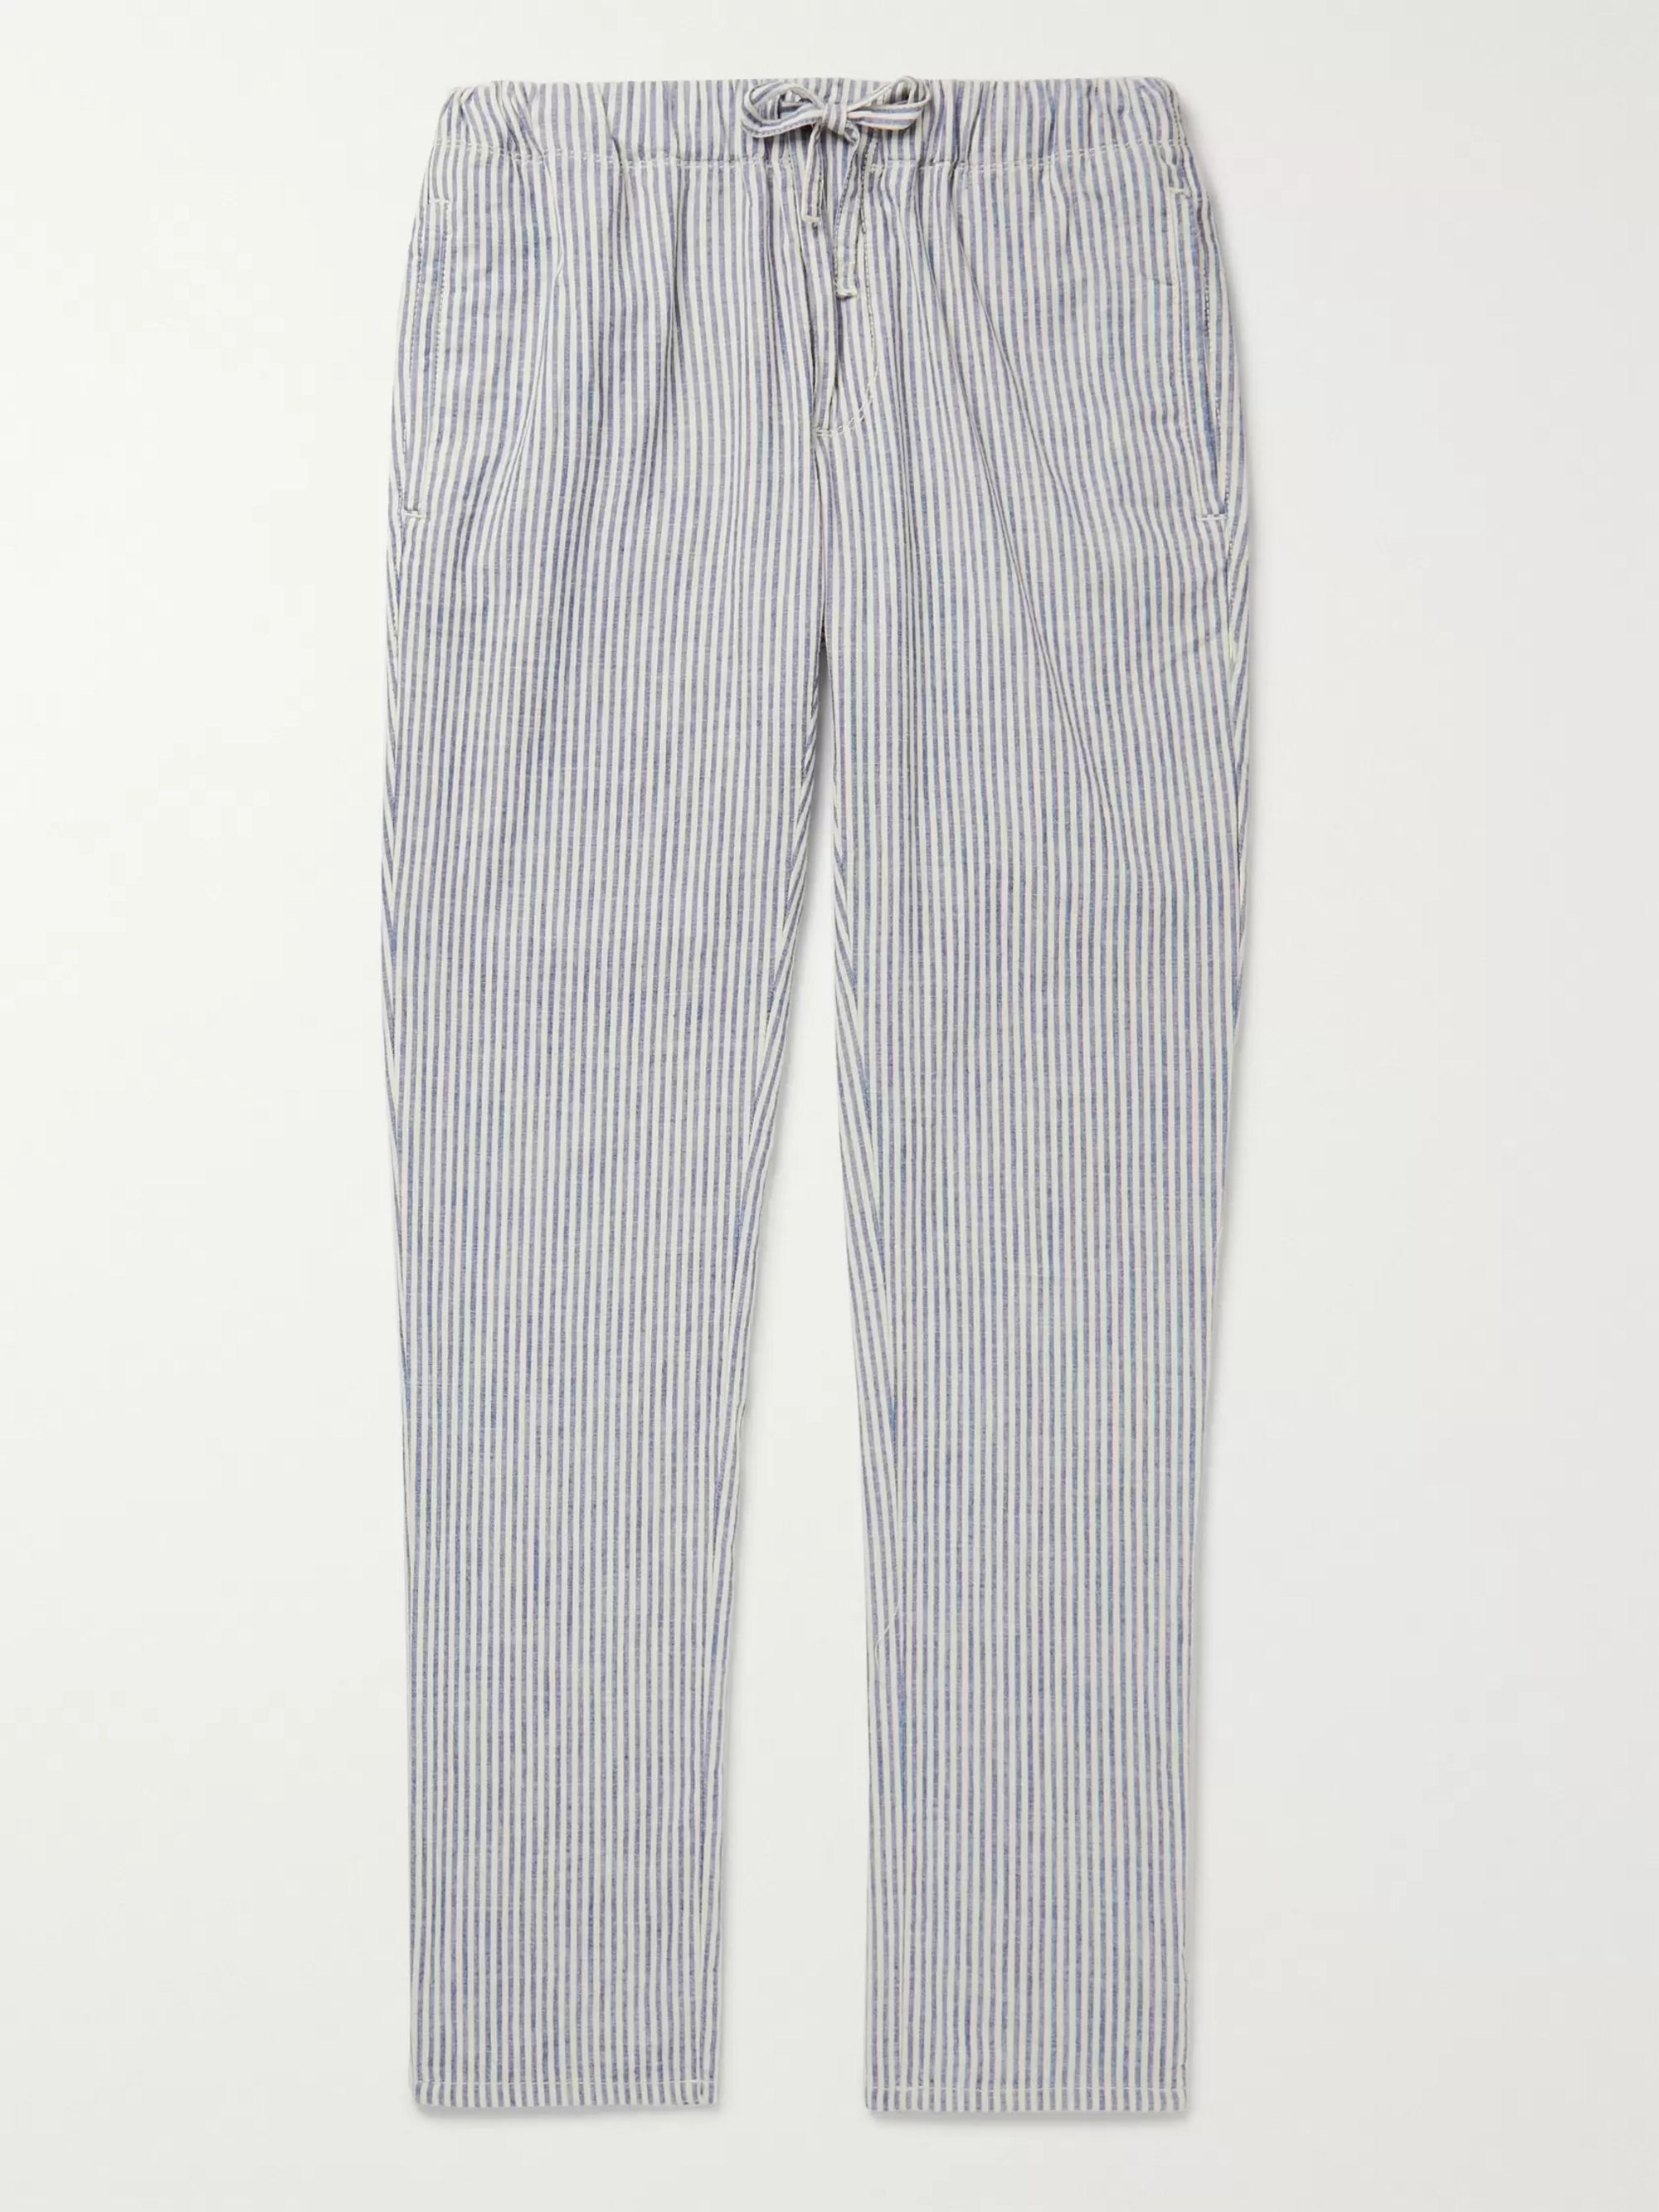 Incotex Slim-Fit Striped Cotton Drawstring Trousers